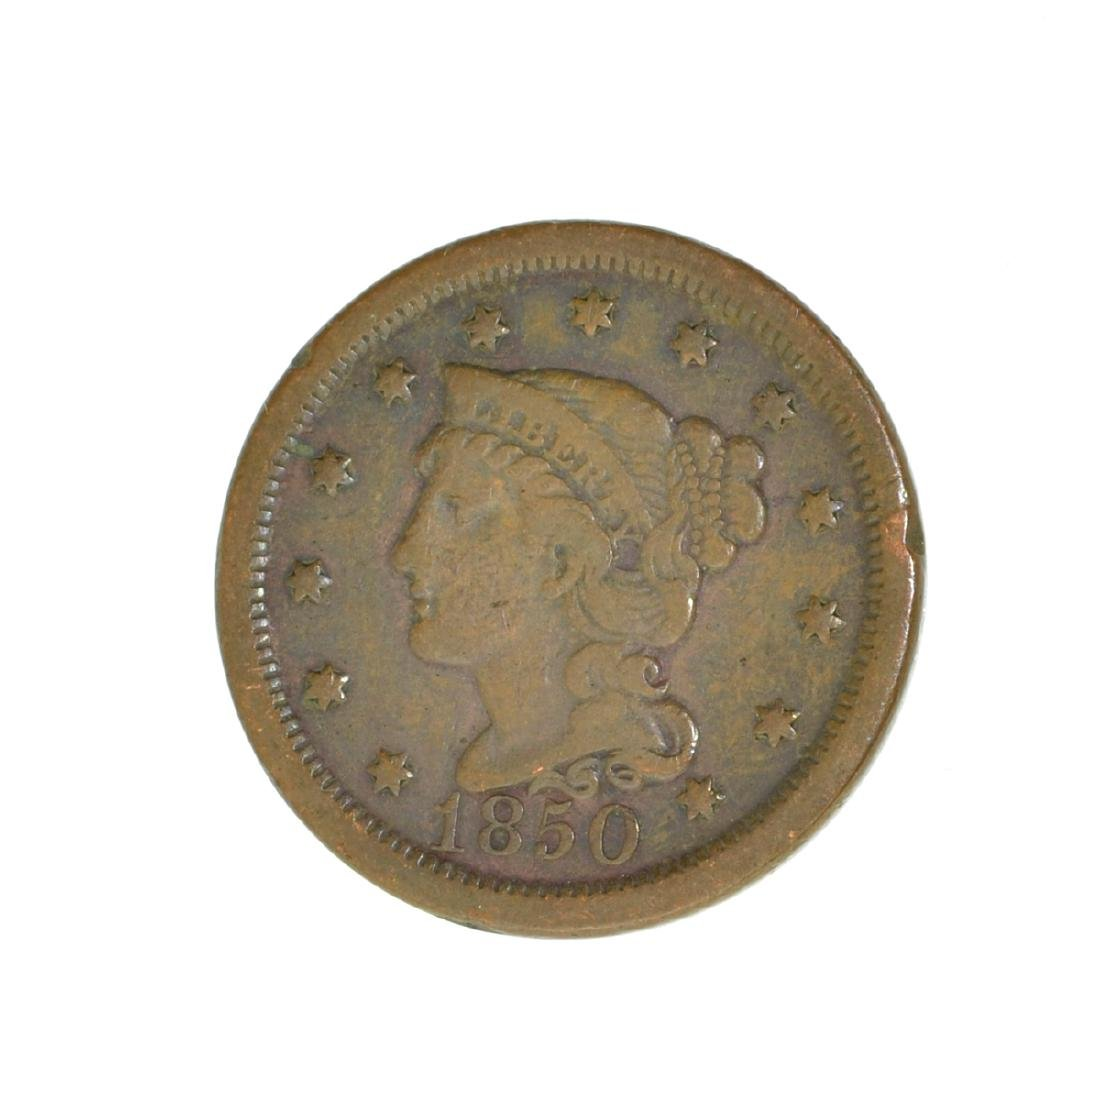 *1850 Large Cent Coin (JG)